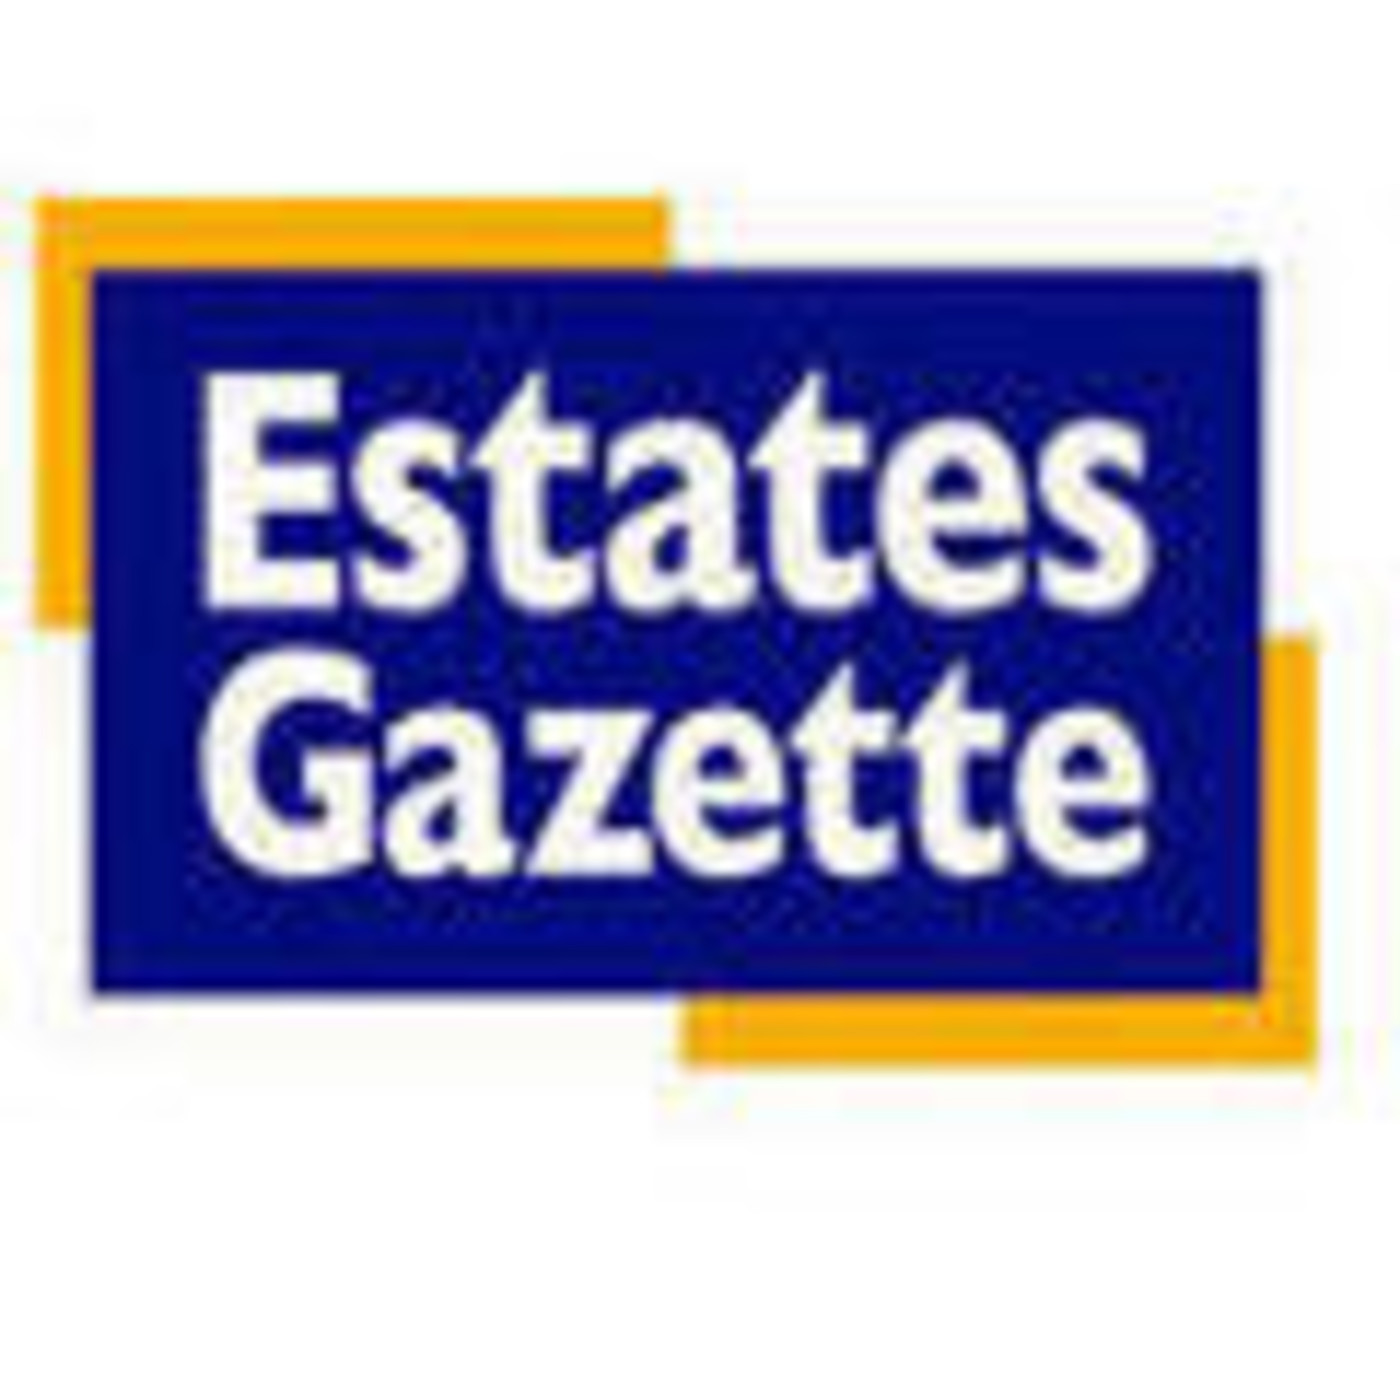 The Estates Gazette team